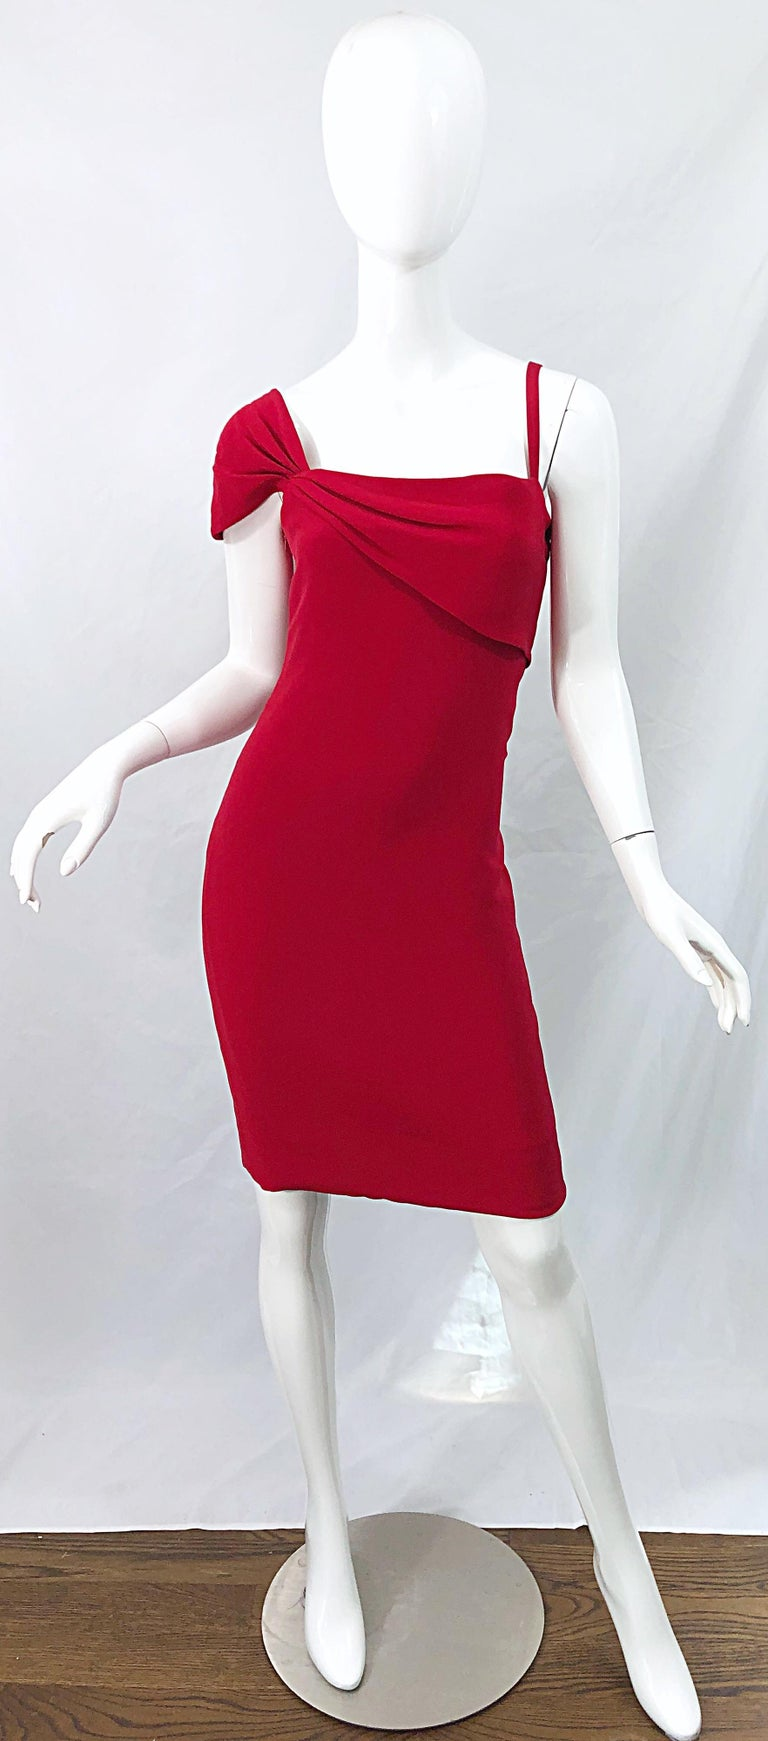 Vintage Bill Blass 1990s Size 6 Lipstick Red One Shoulder 90s Silk Dress For Sale 8